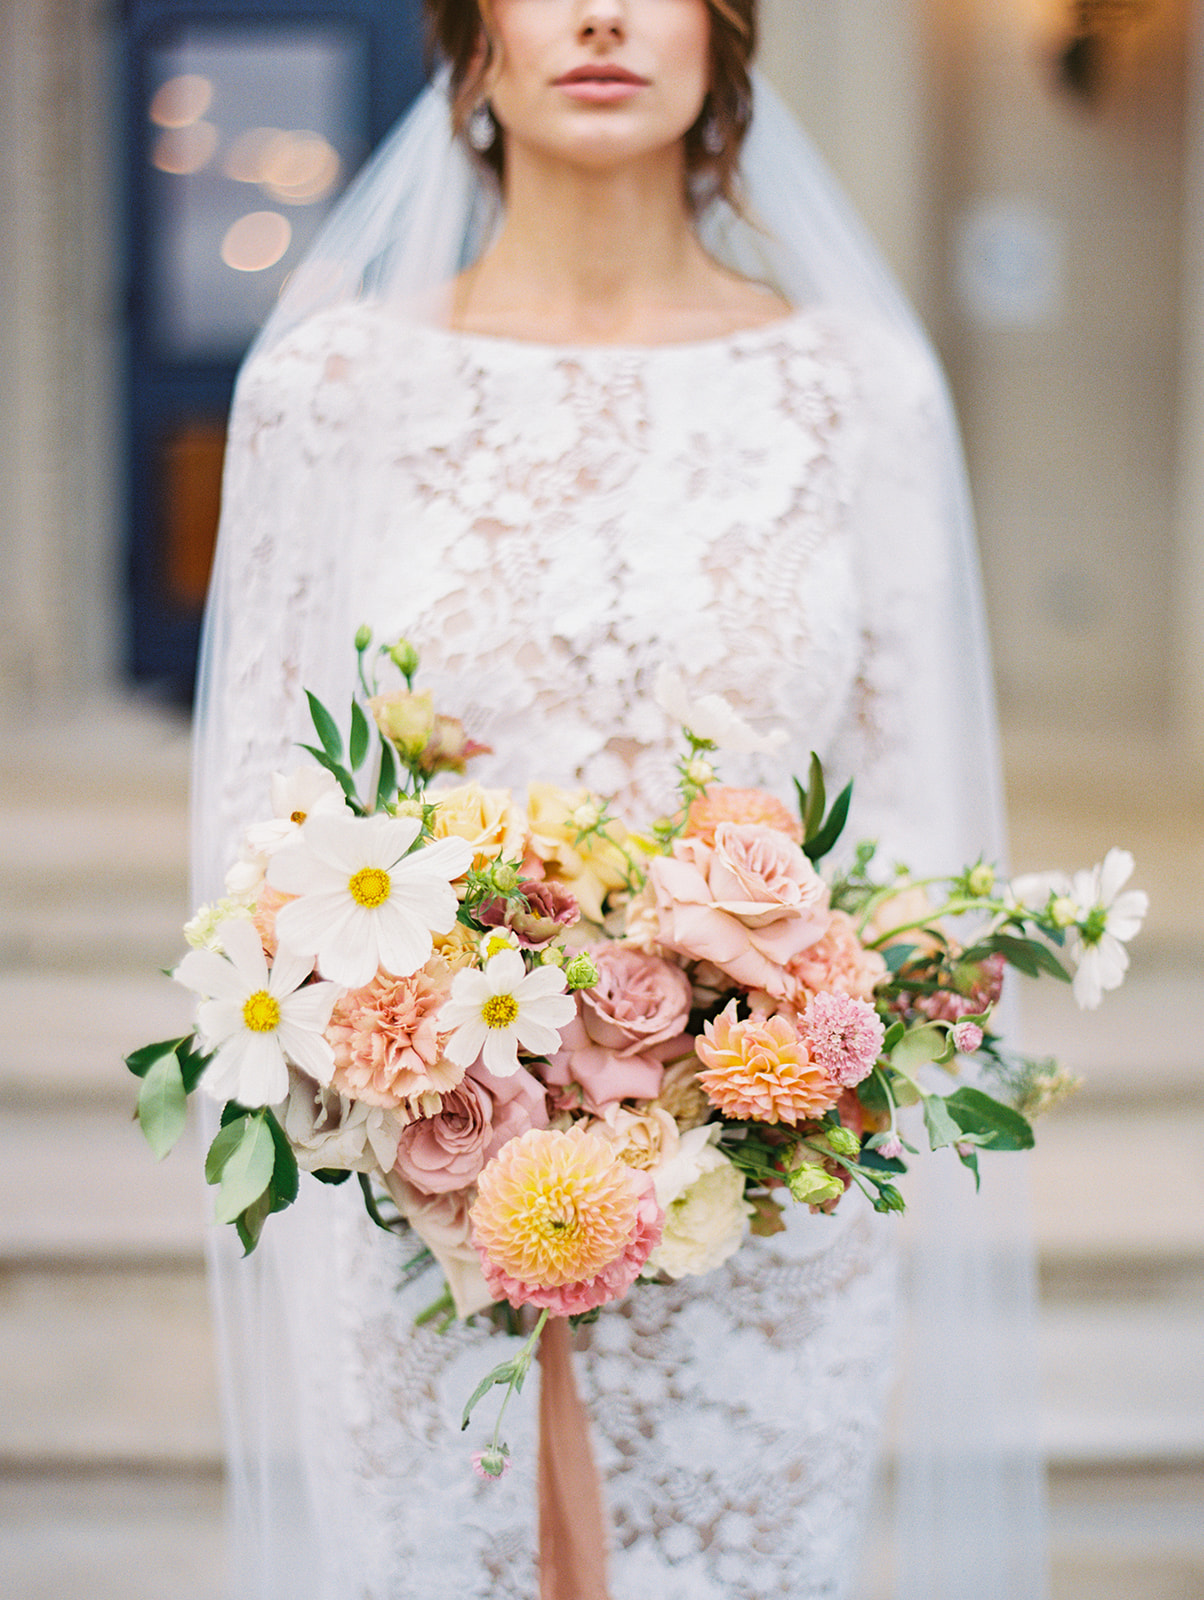 Colorful pink and white wedding bouquet   Blushington Blooms   Alexa Kay Events